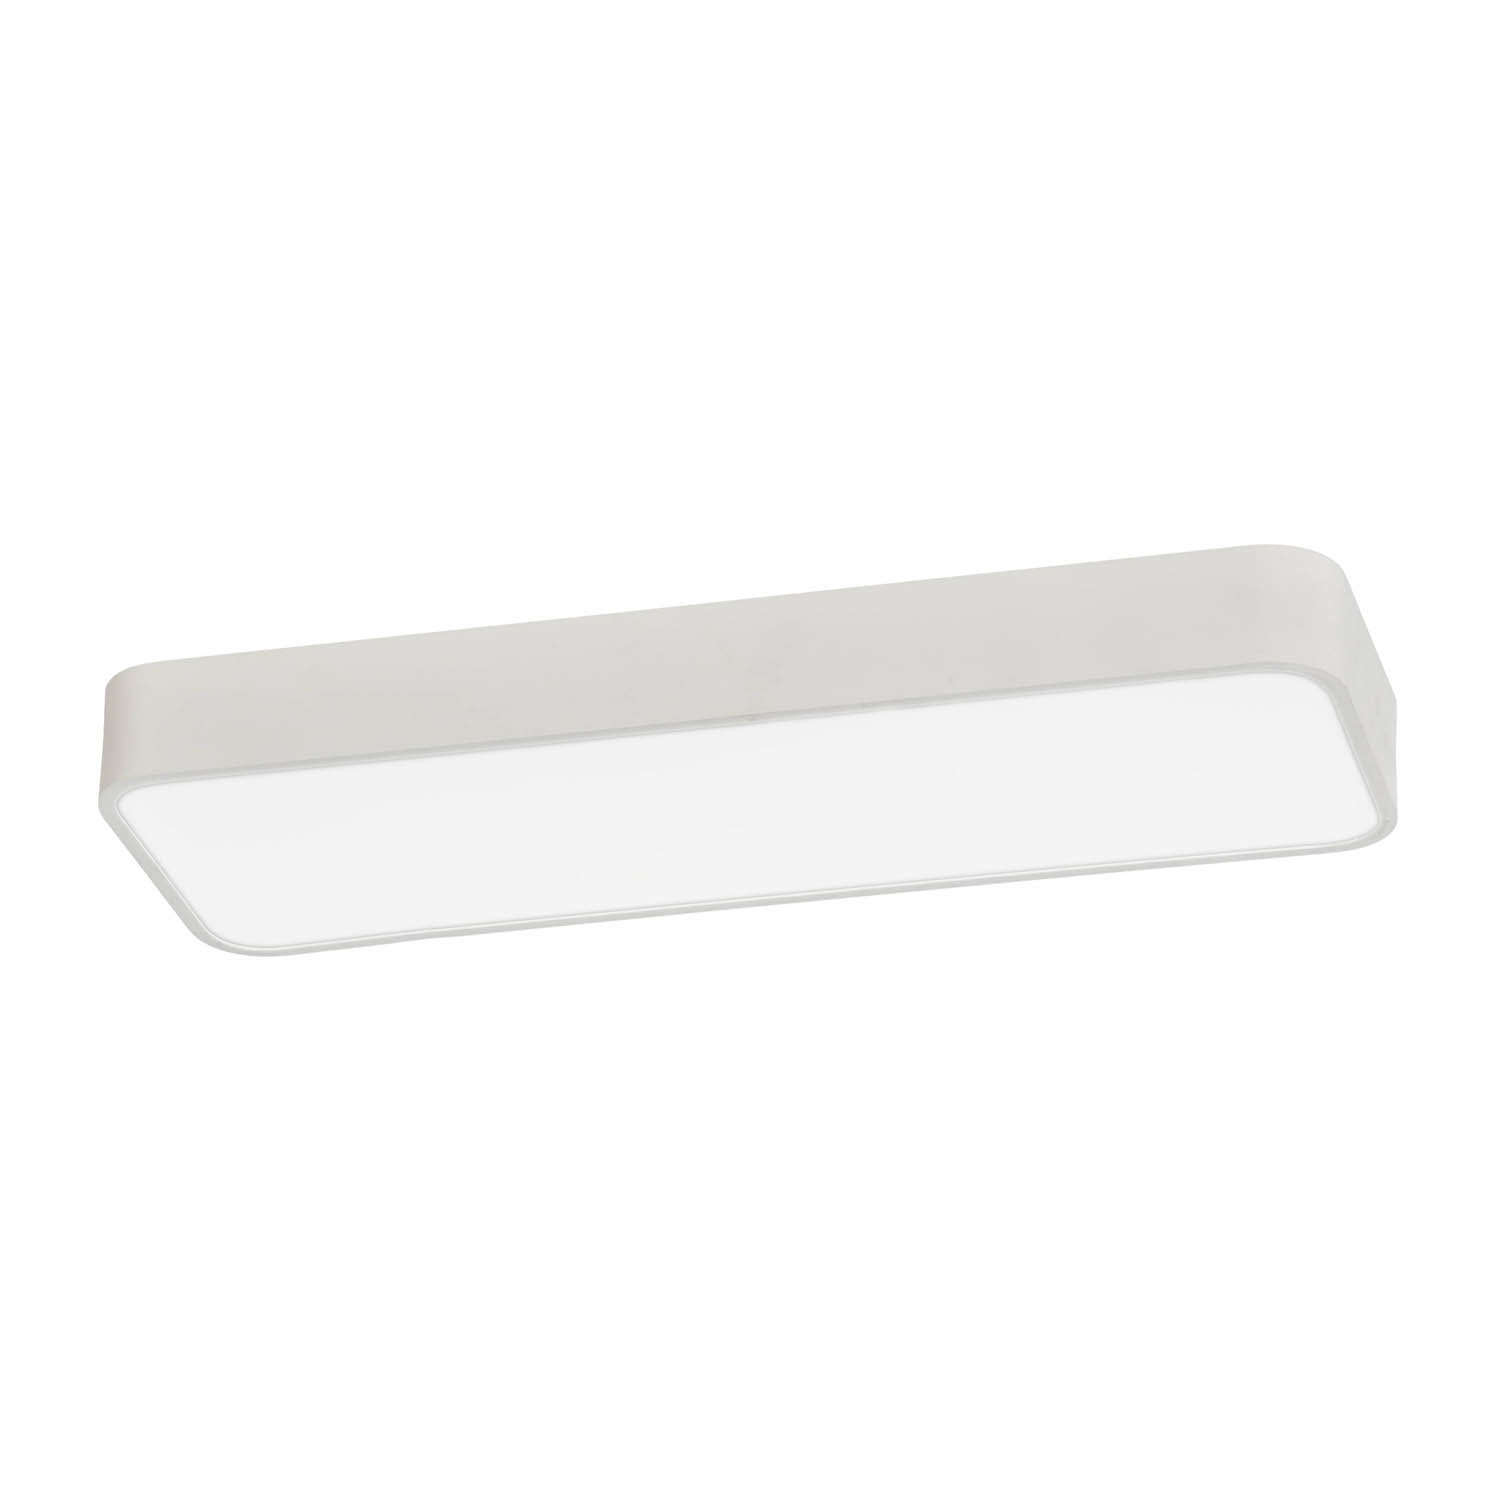 Plaf n led superficie iluminaci n plafones for Plafon led cocina rectangular